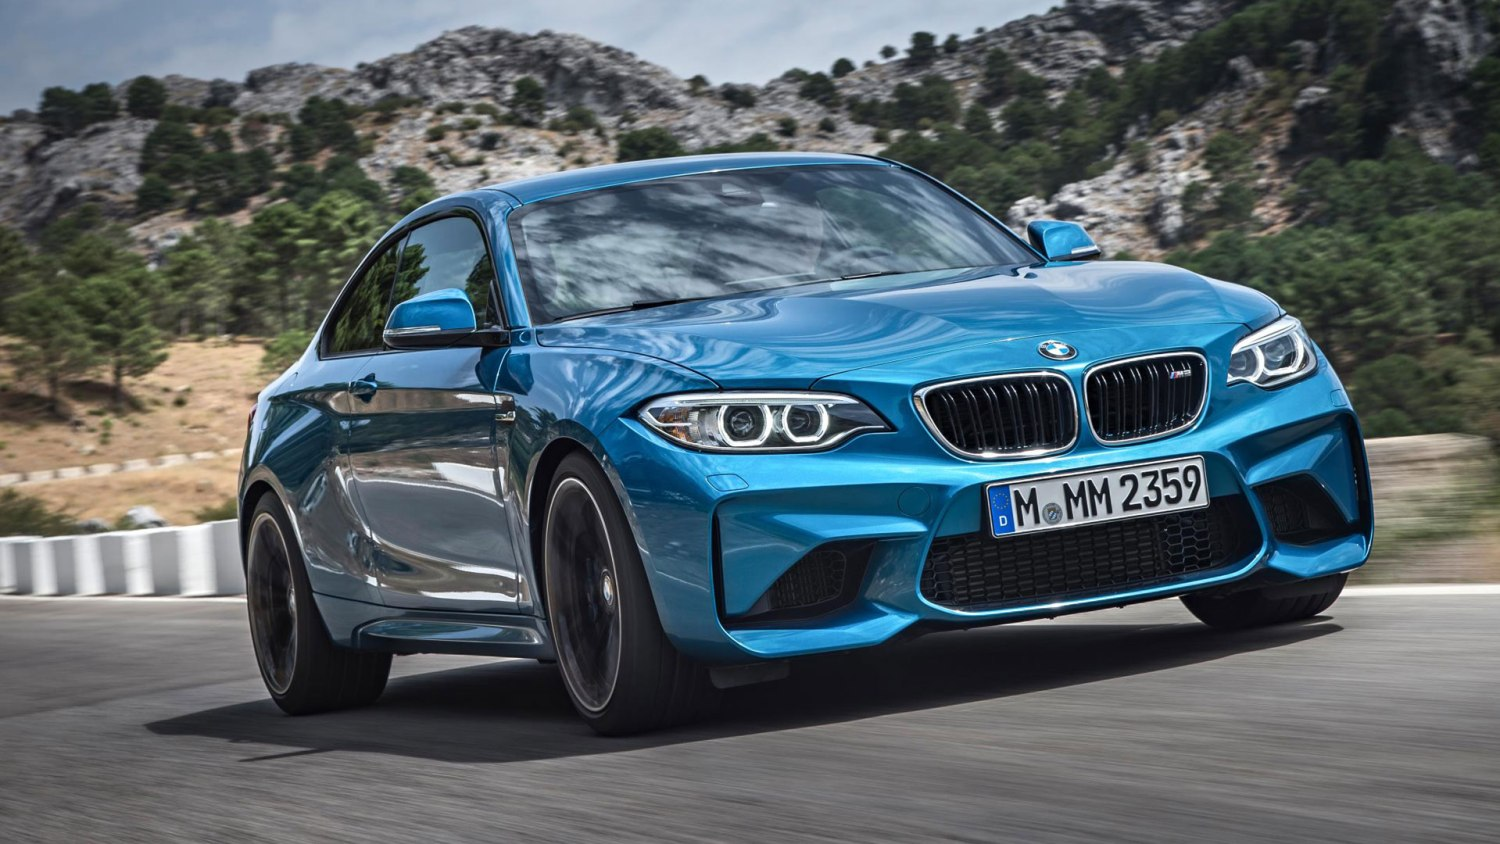 BMW M2 - greatest cars of the decade